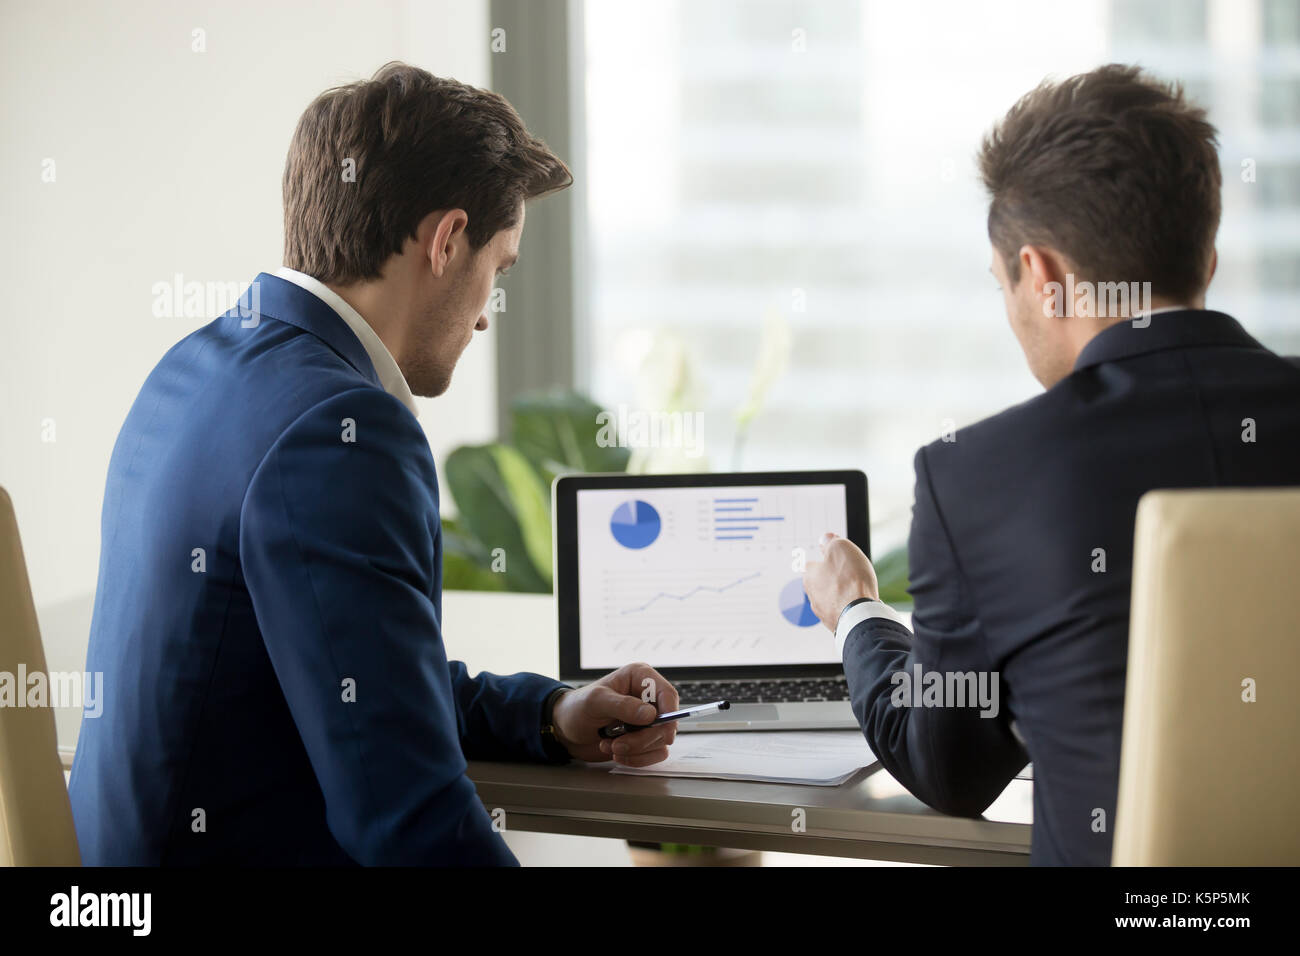 Two CEO analyzing financial rates on laptop screen - Stock Image